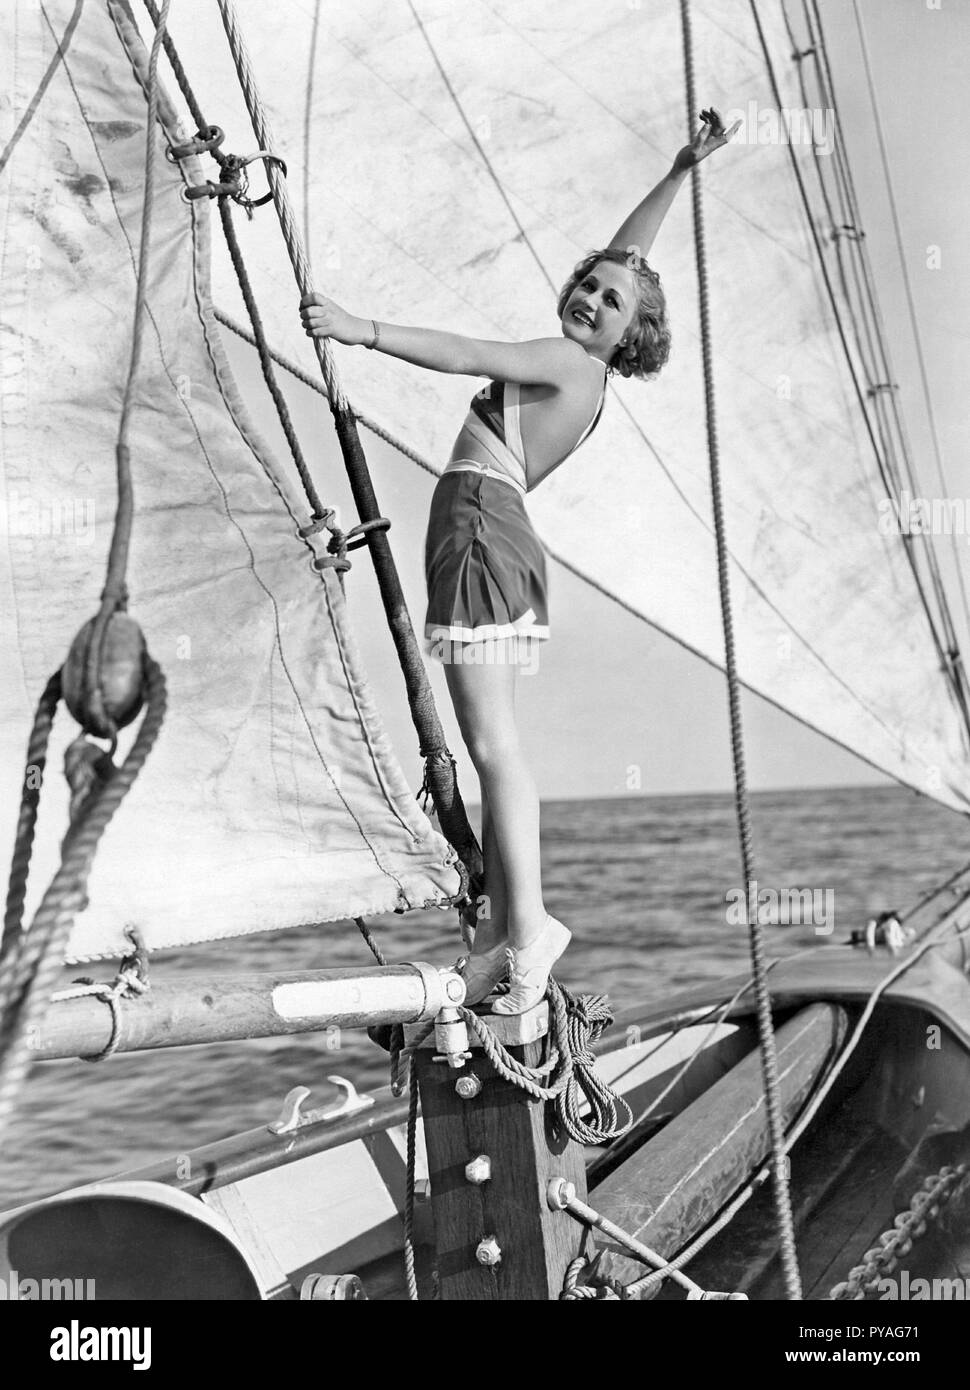 American actress in the 1930s. American actress Wynne Gibson, 1898-1987. She was contracted with movie company Paramount and made some 50 films between 1929 and 1956. Pictured here wearing a 1930s summer outfit aboard the sailing schooner Mariner. 1930s - Stock Image